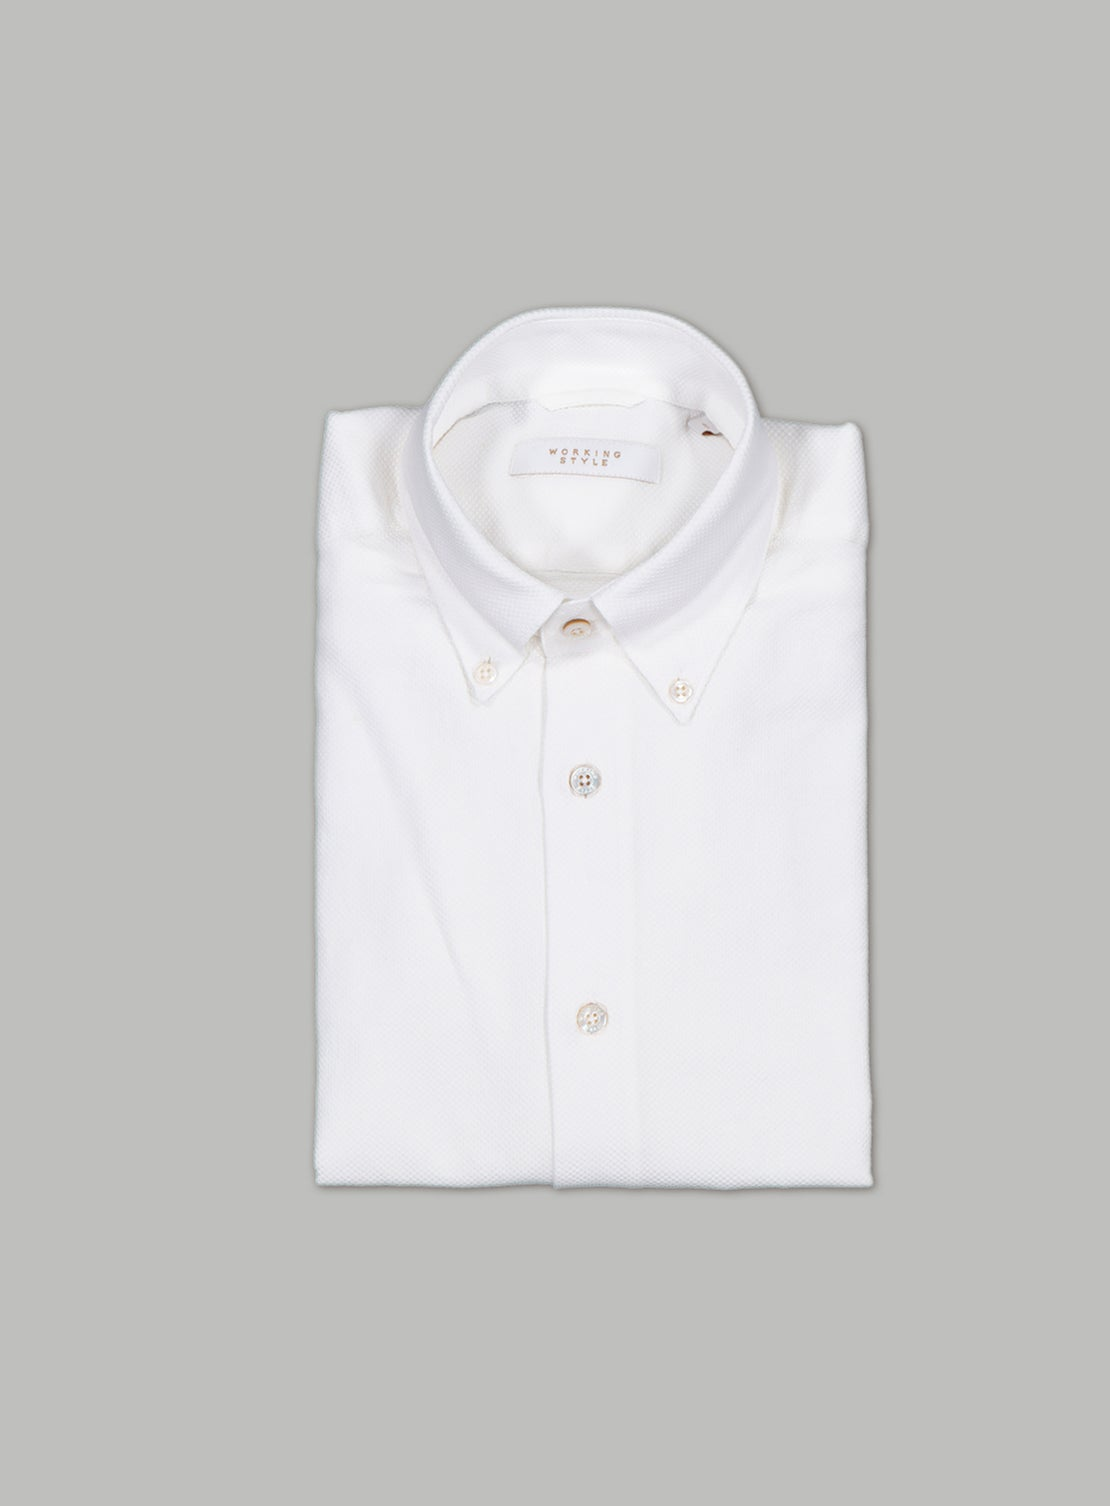 White Textured Oval Shirt